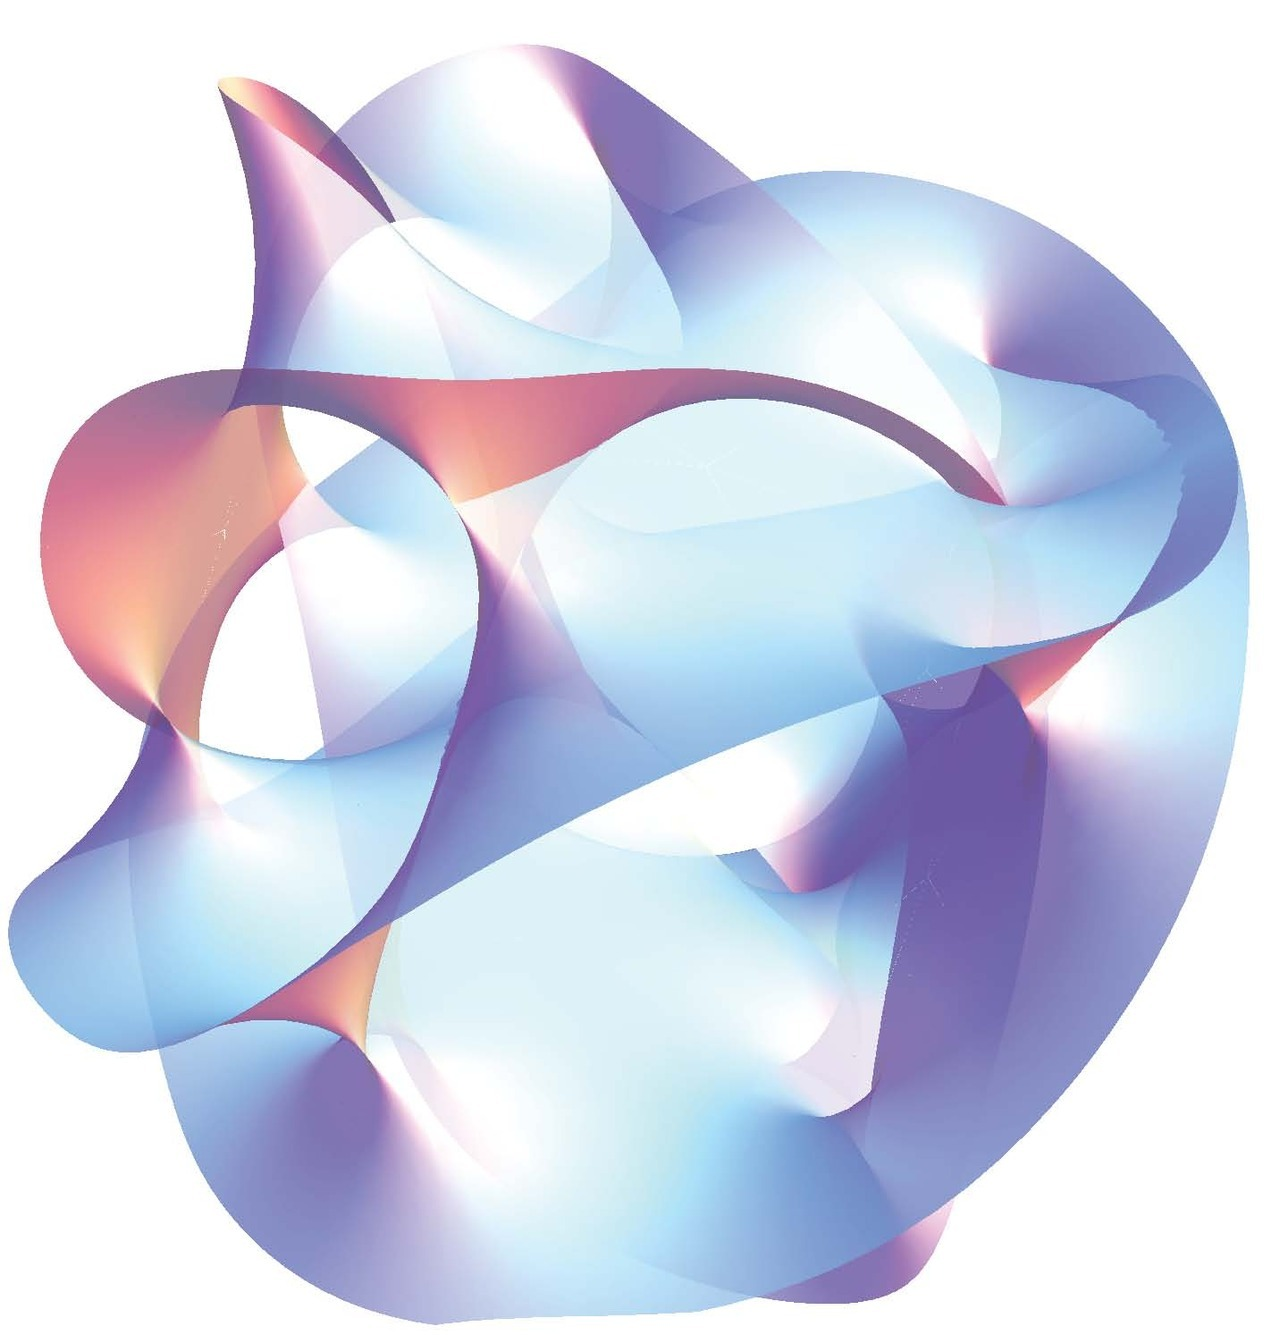 Calabi-yau manifold, the shape of string theory